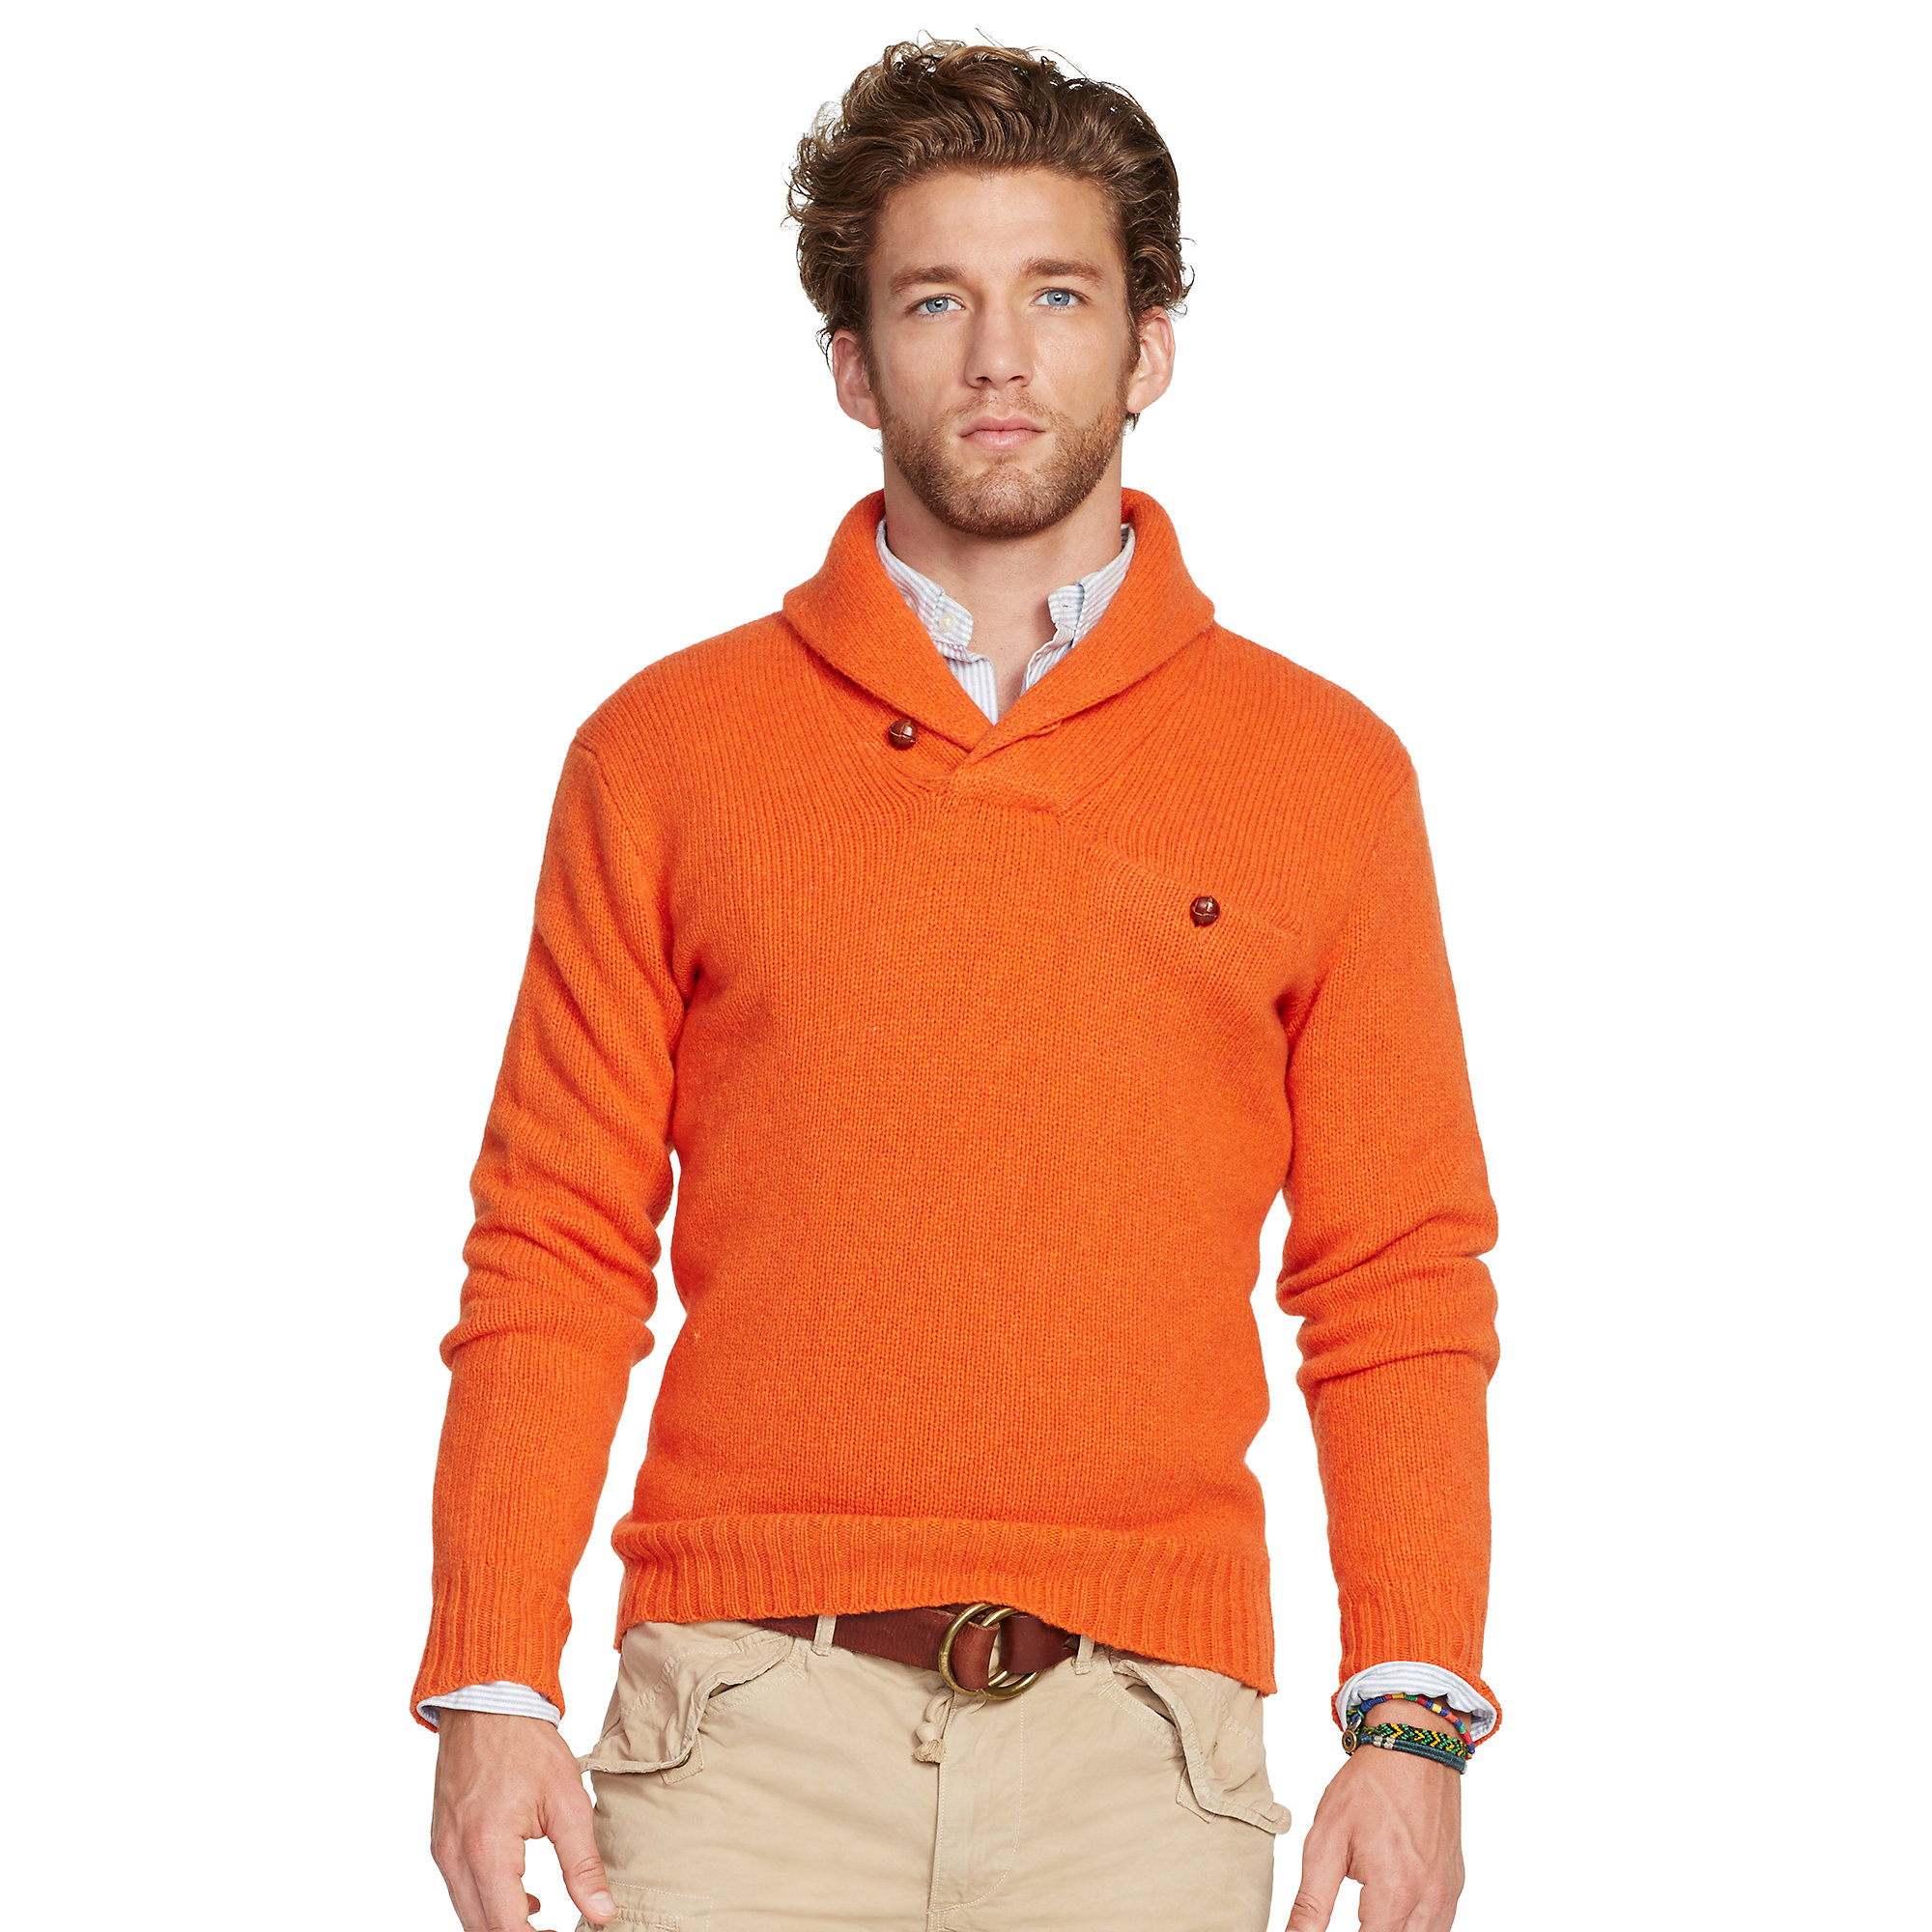 polo ralph lauren shawl pullover sweater in orange for men. Black Bedroom Furniture Sets. Home Design Ideas